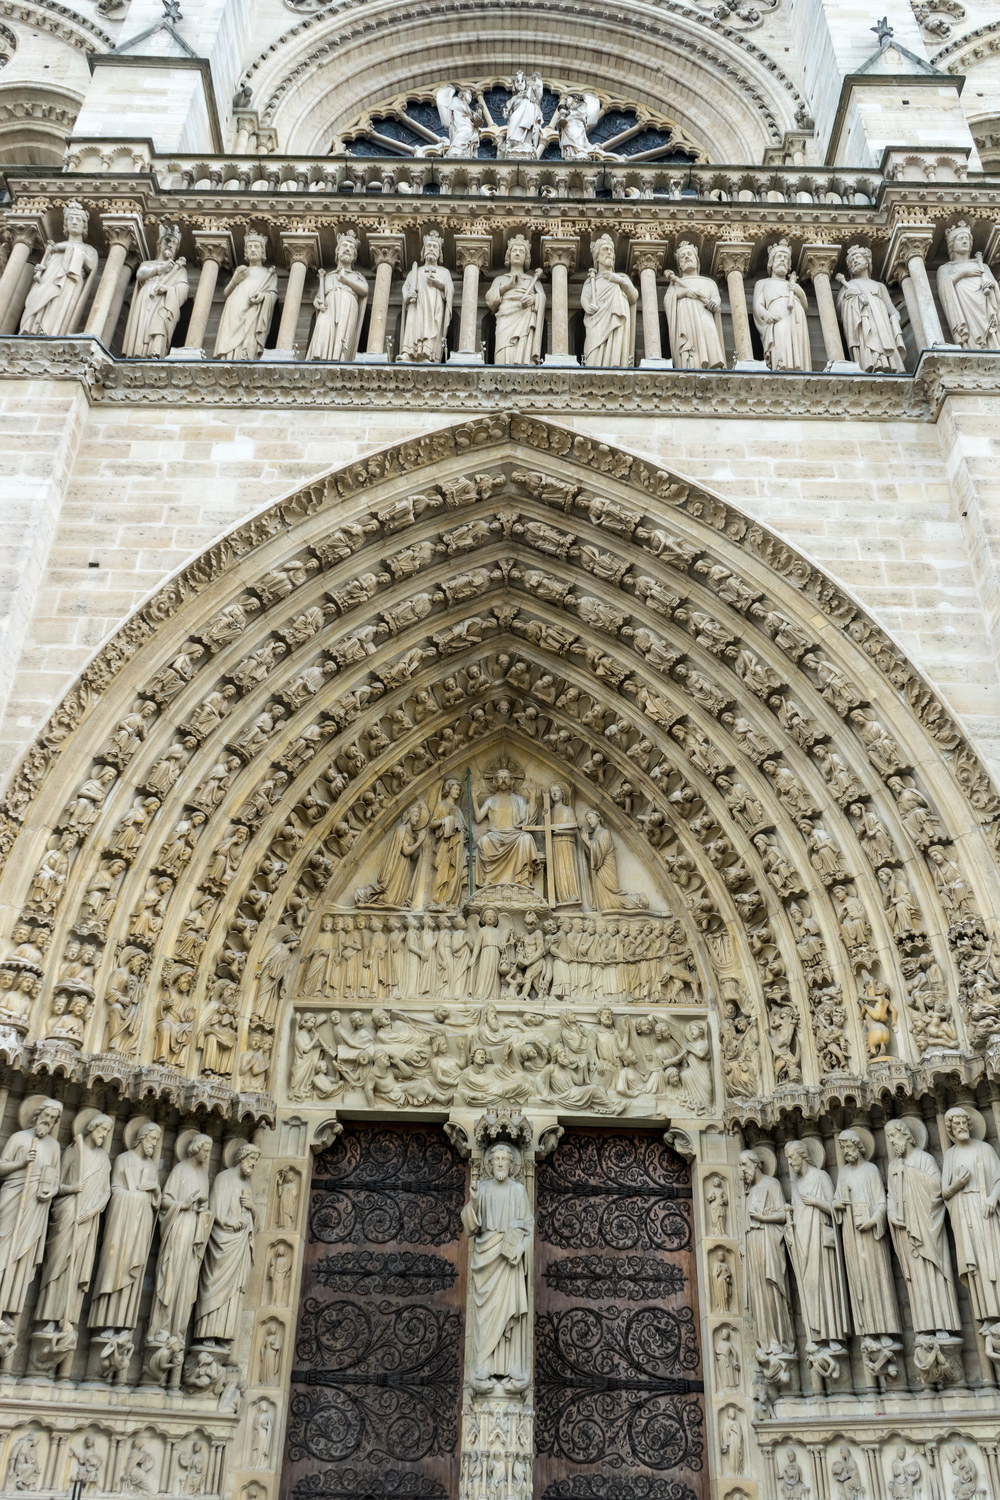 Relief carvings around the main entrance to Notre Dame